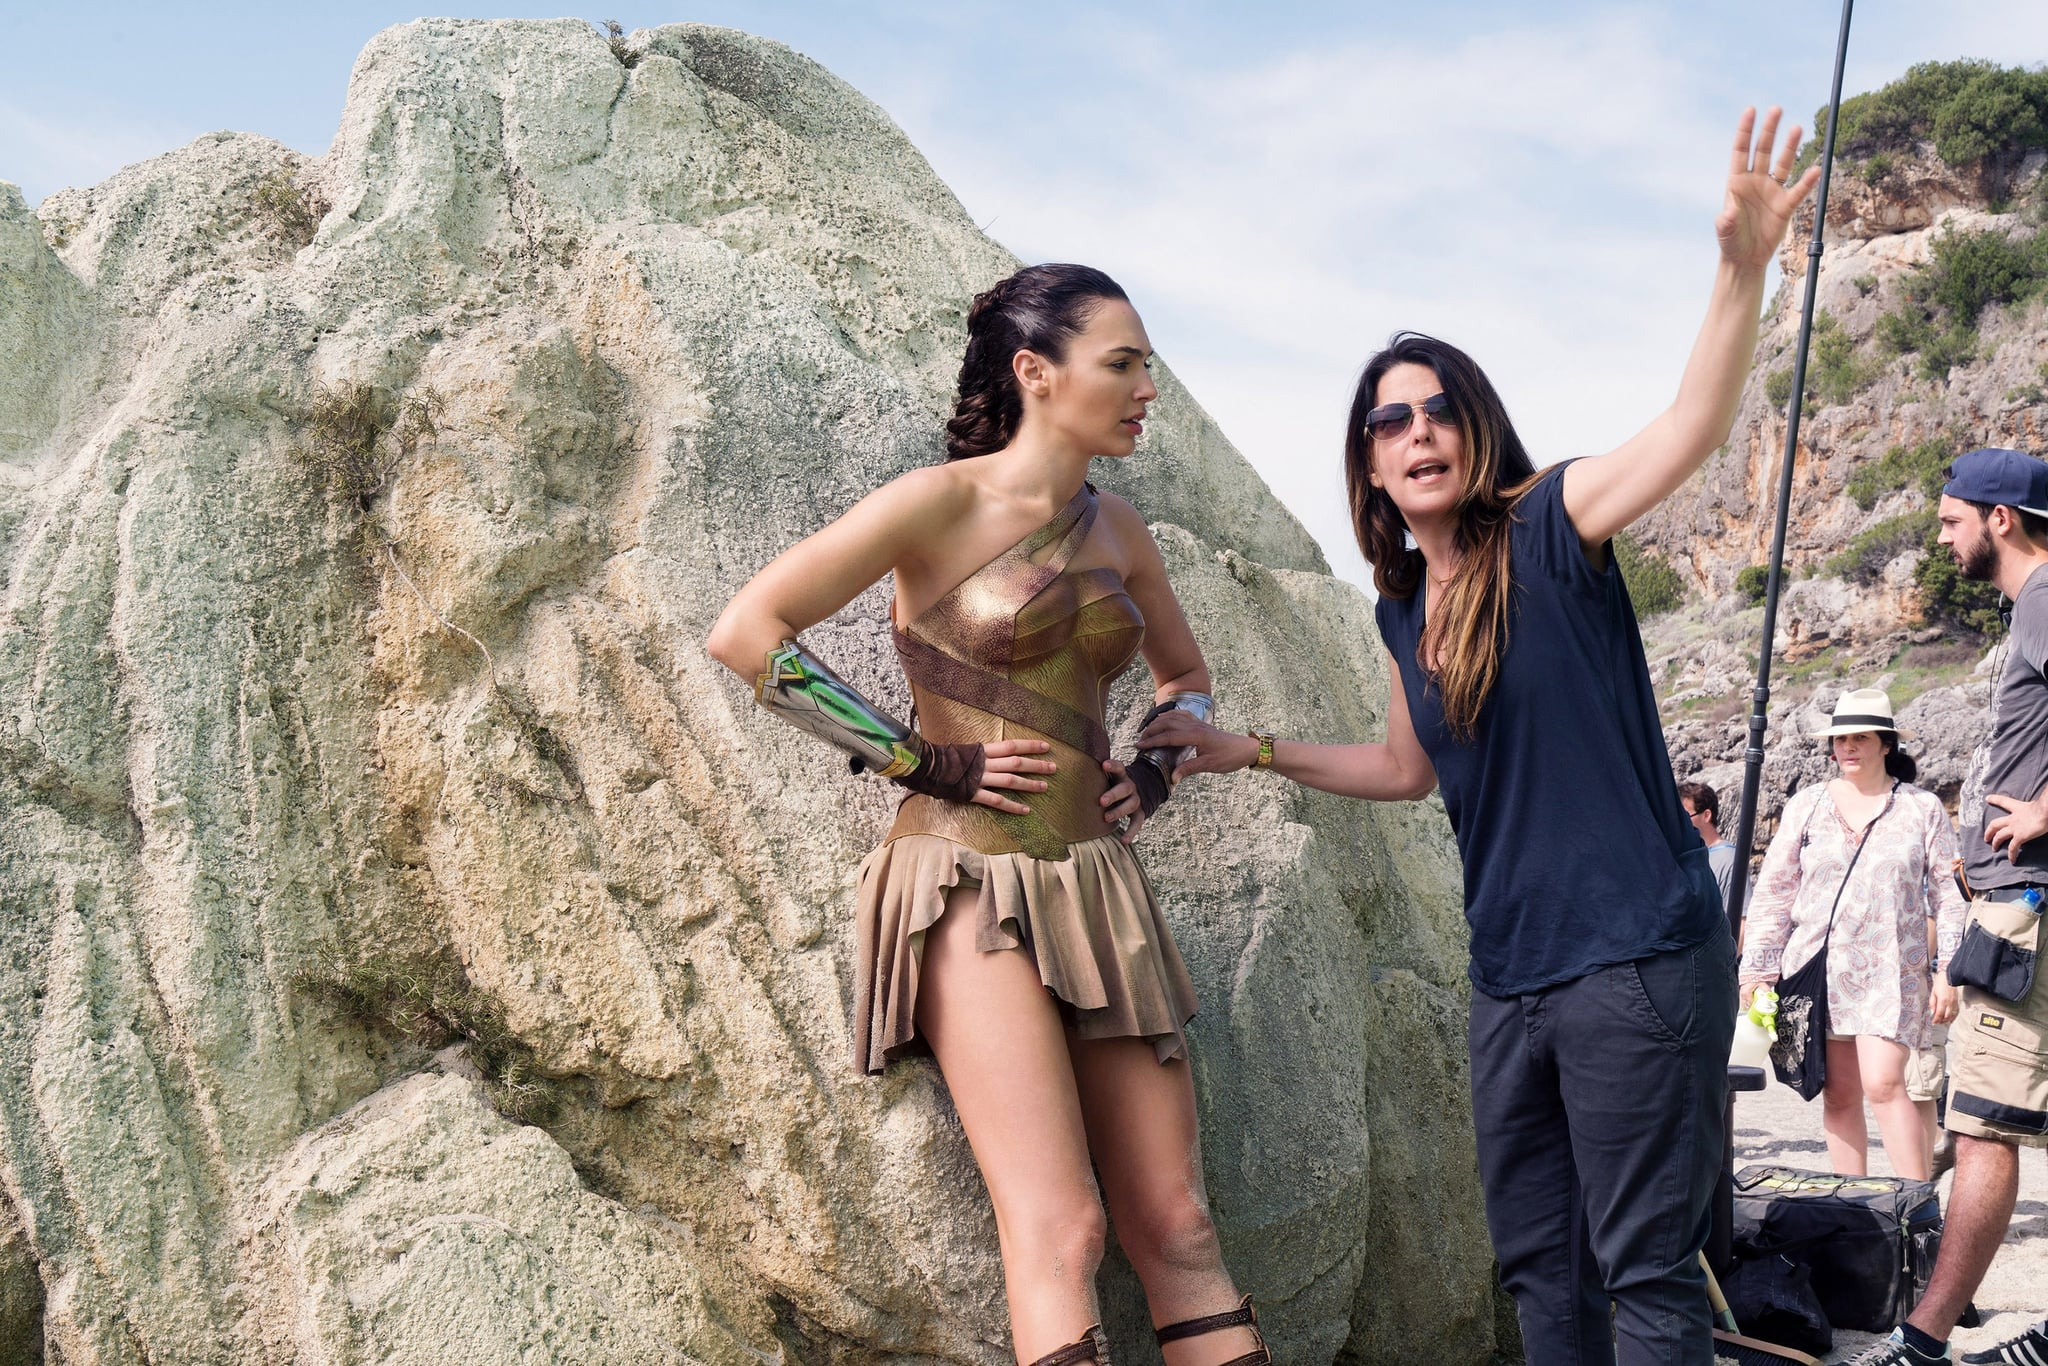 Wonder Woman Scenes That Weren't Overtly Sexual | POPSUGAR ...